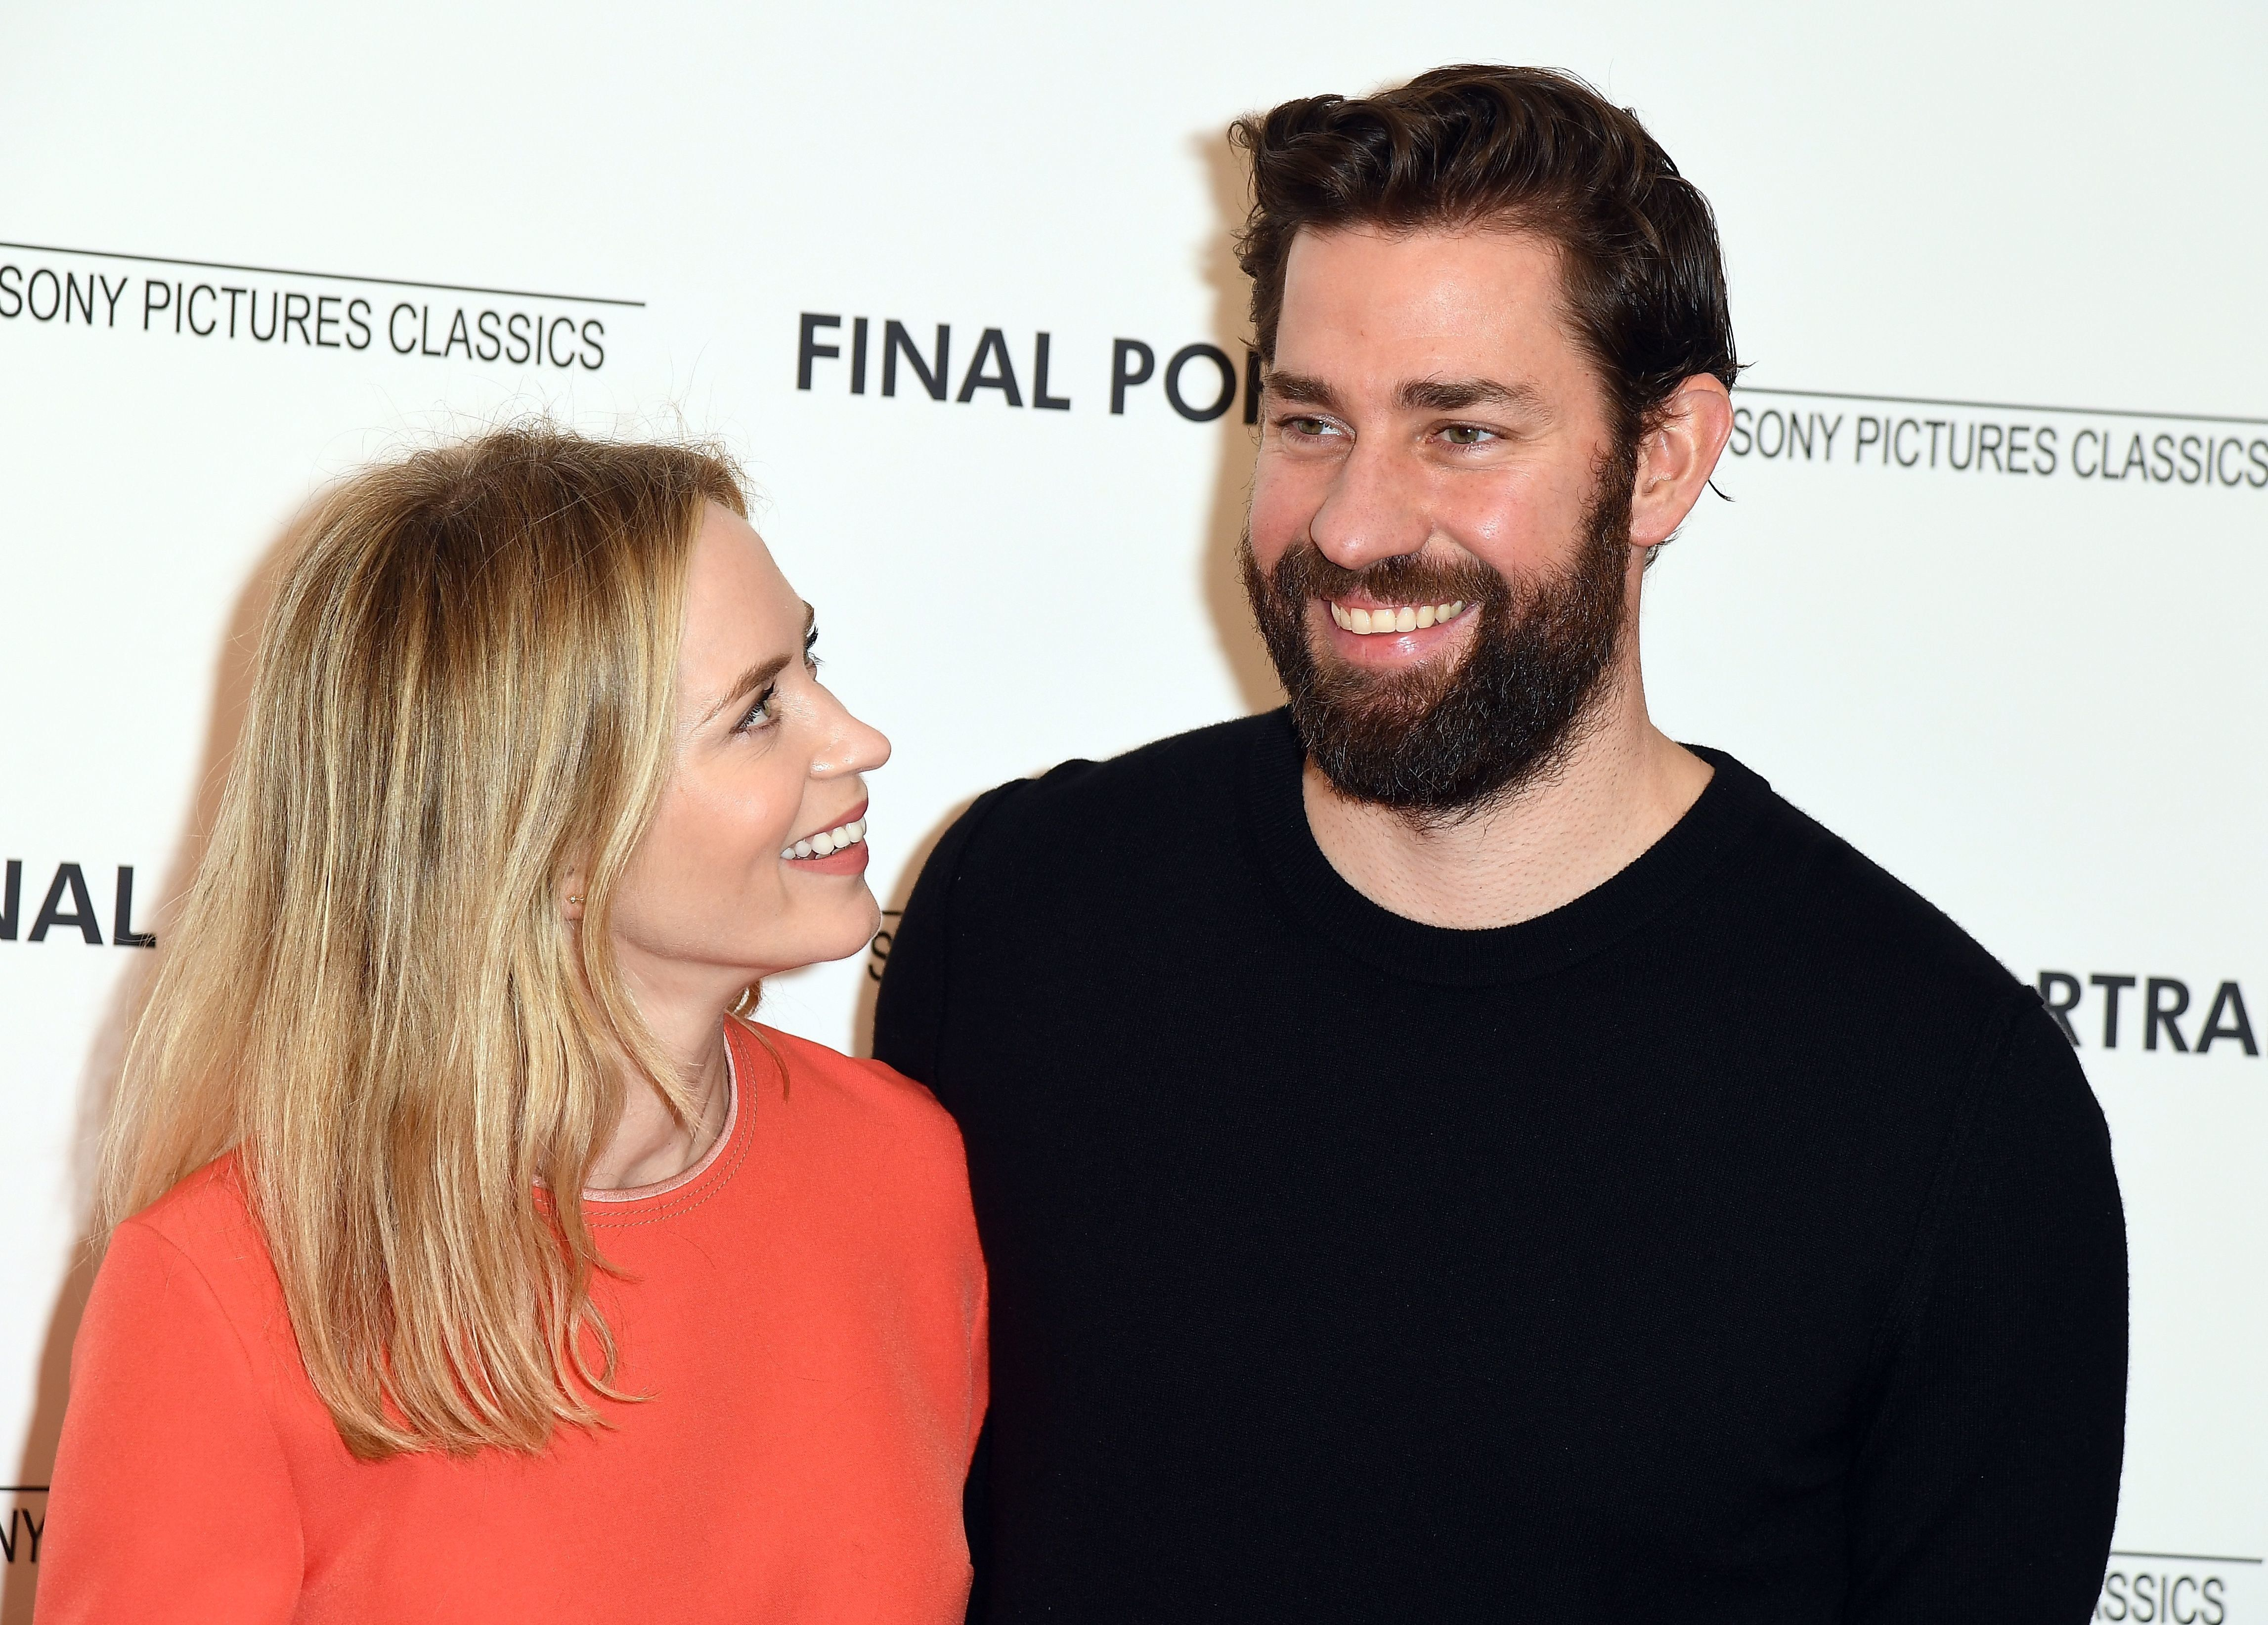 Emily Blunt and John Krasinski attend a film screening at the Guggenheim Museum in March.